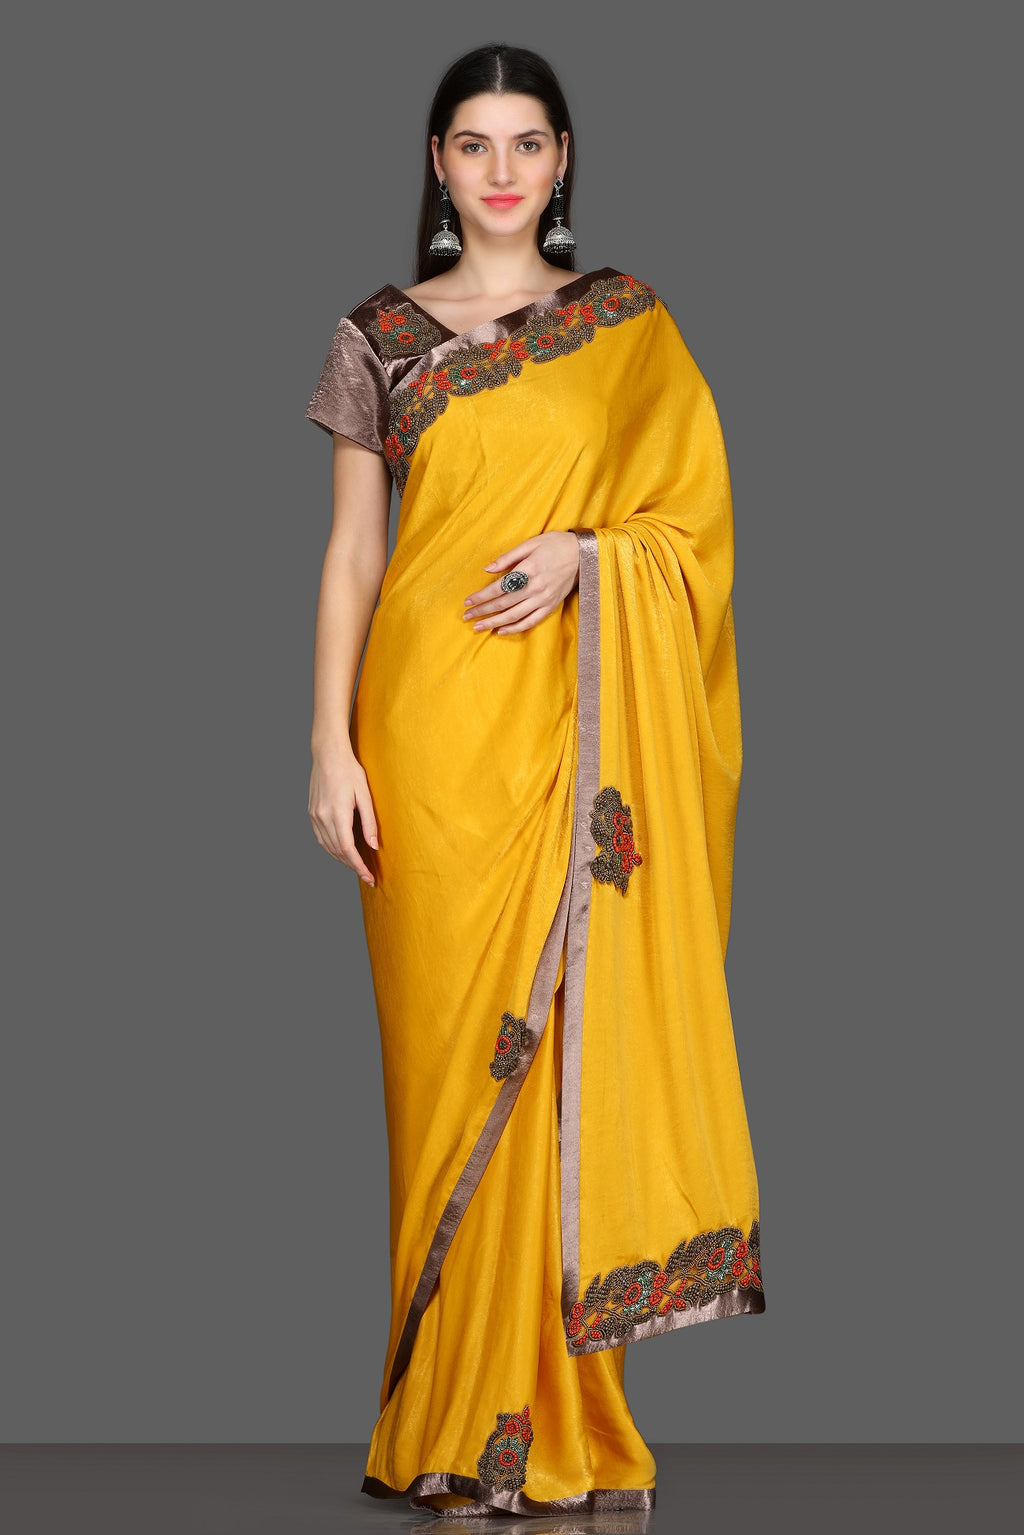 Buy yellow embroidered saree online in USA with brown embroidered sari blouse. Make a fashion statement at parties with stunning designer sarees from Pure Elegance Indian fashion store in USA.-full view